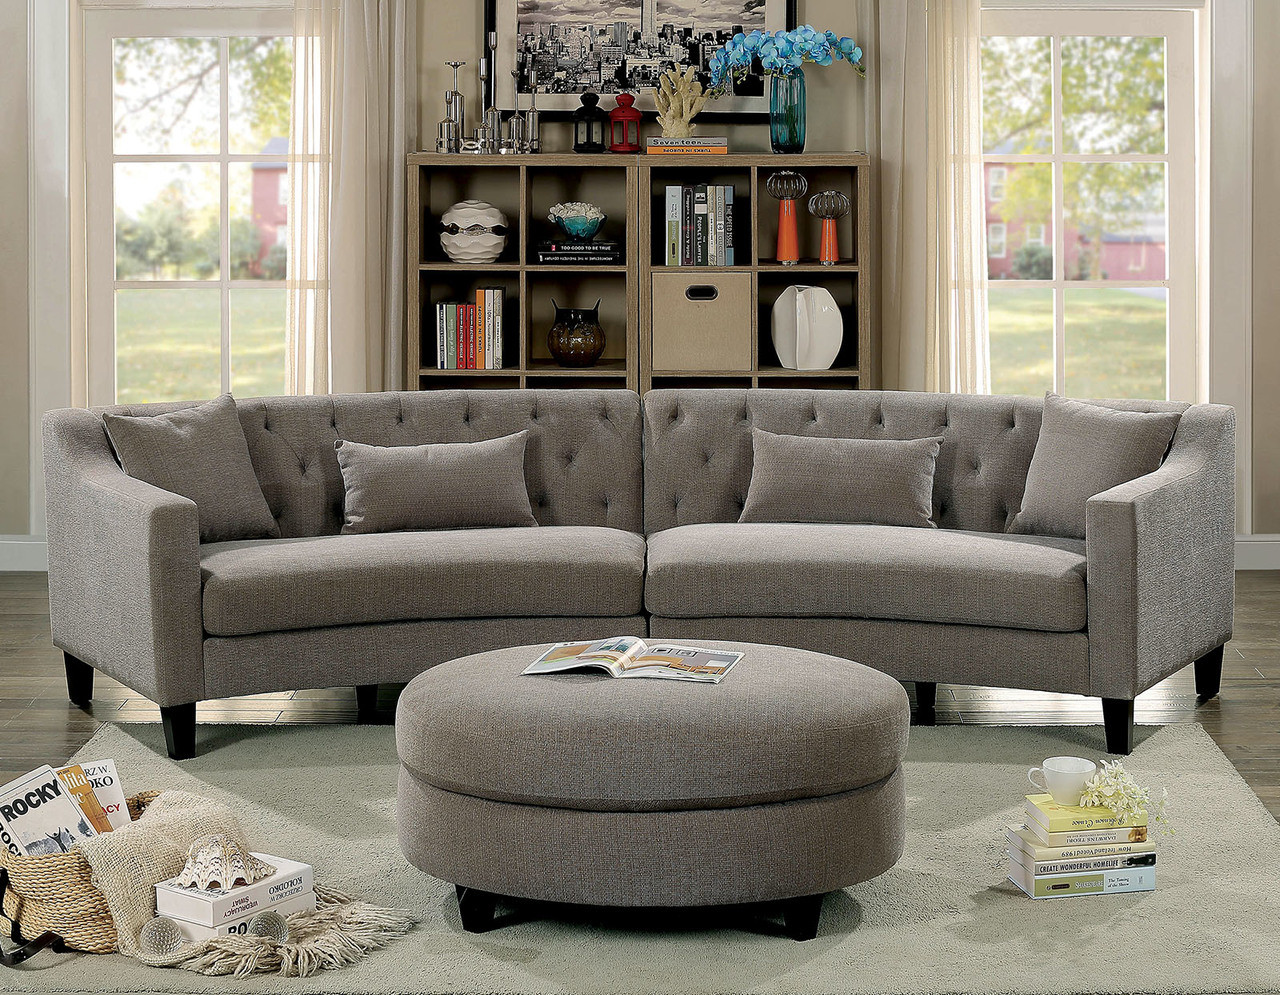 Furniture of america cm6370 curved sectional for Furniture of america